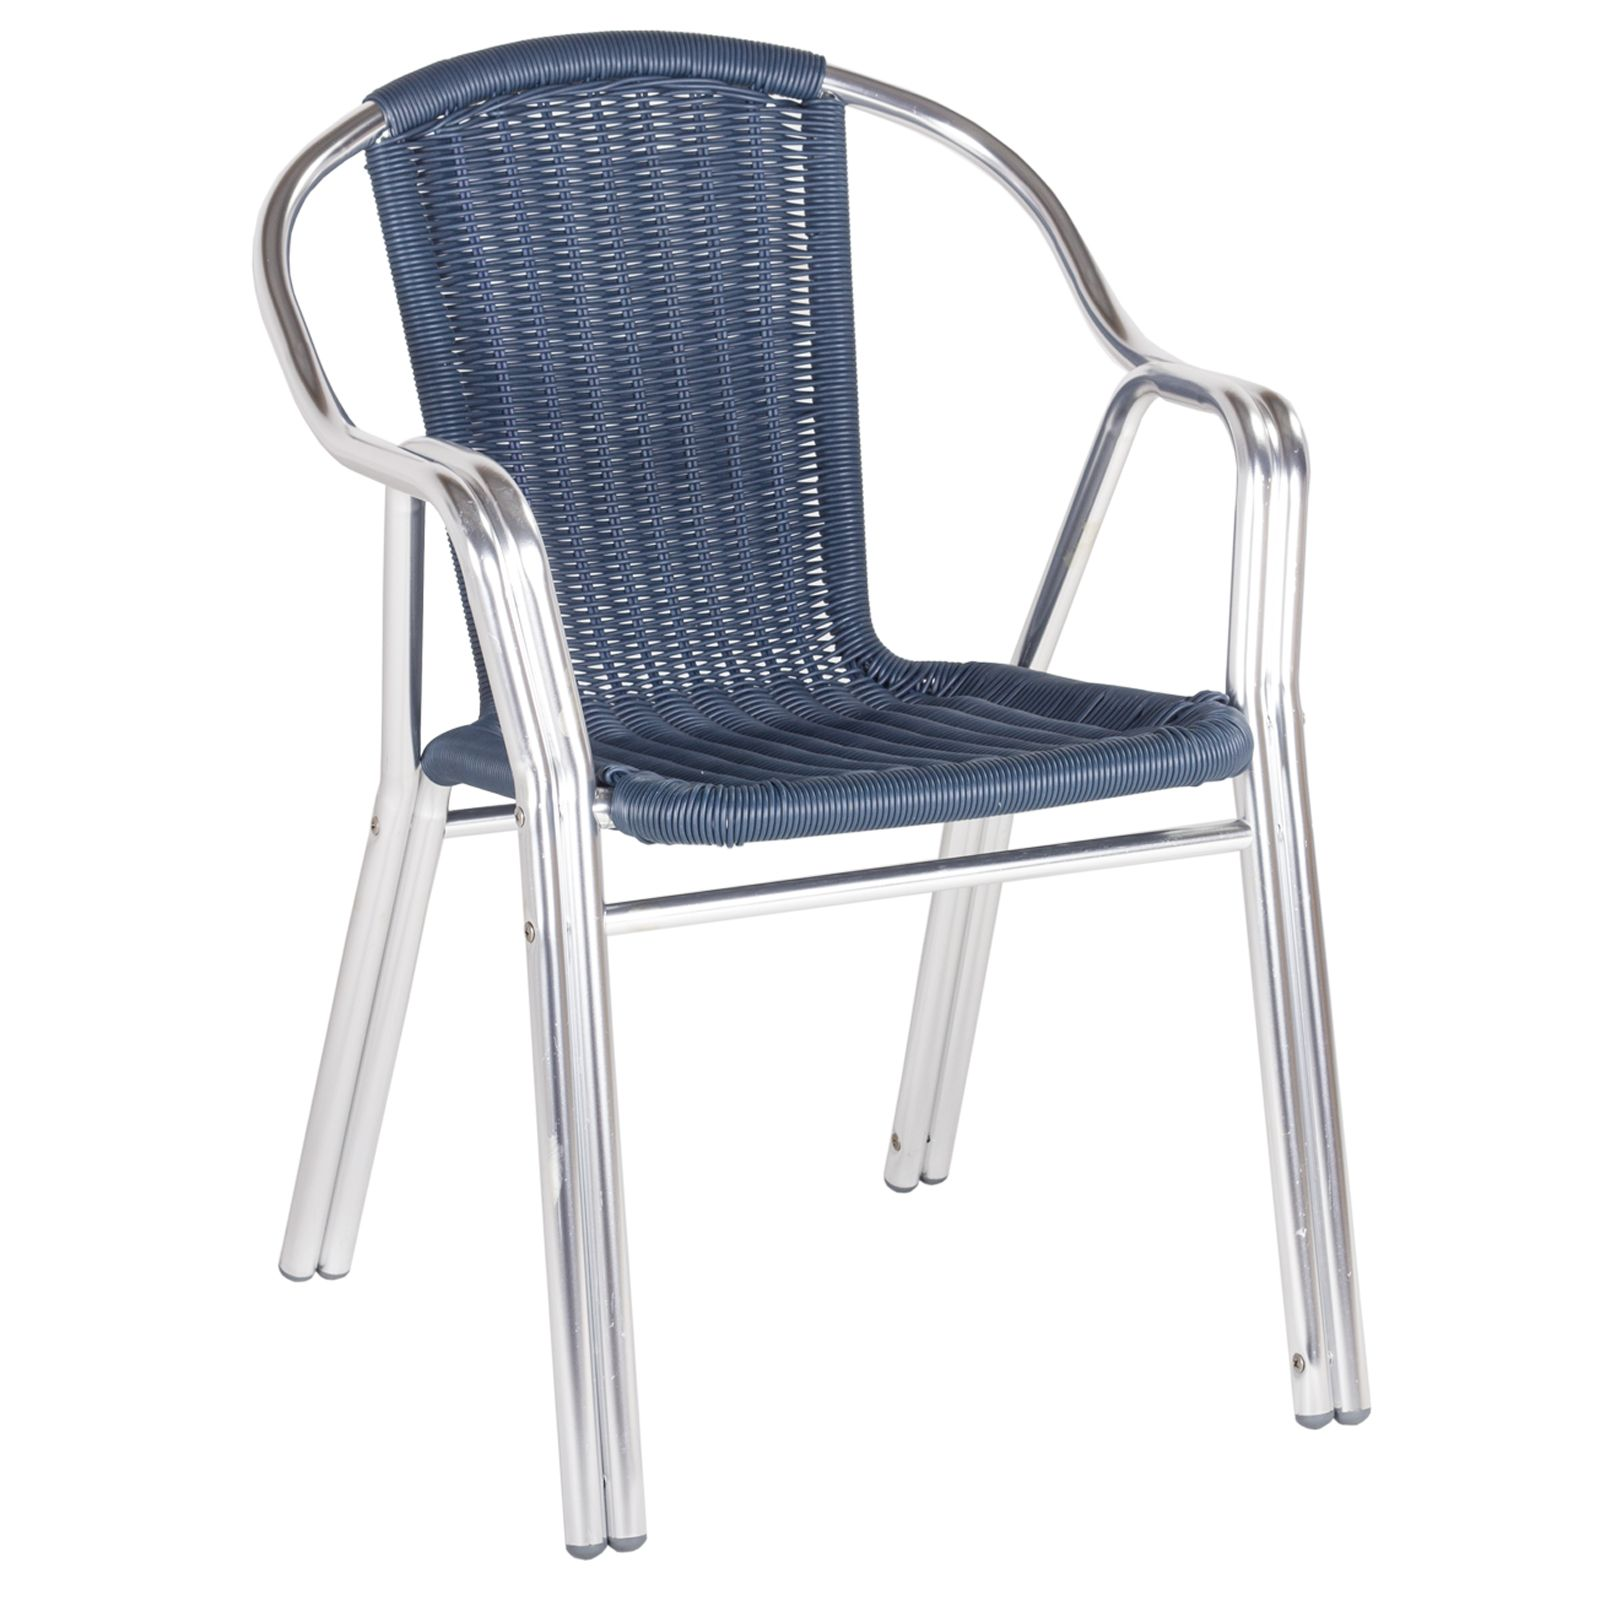 Indoor Bistro Table And Chairs ,cheap Aluminum Bistro Chairs